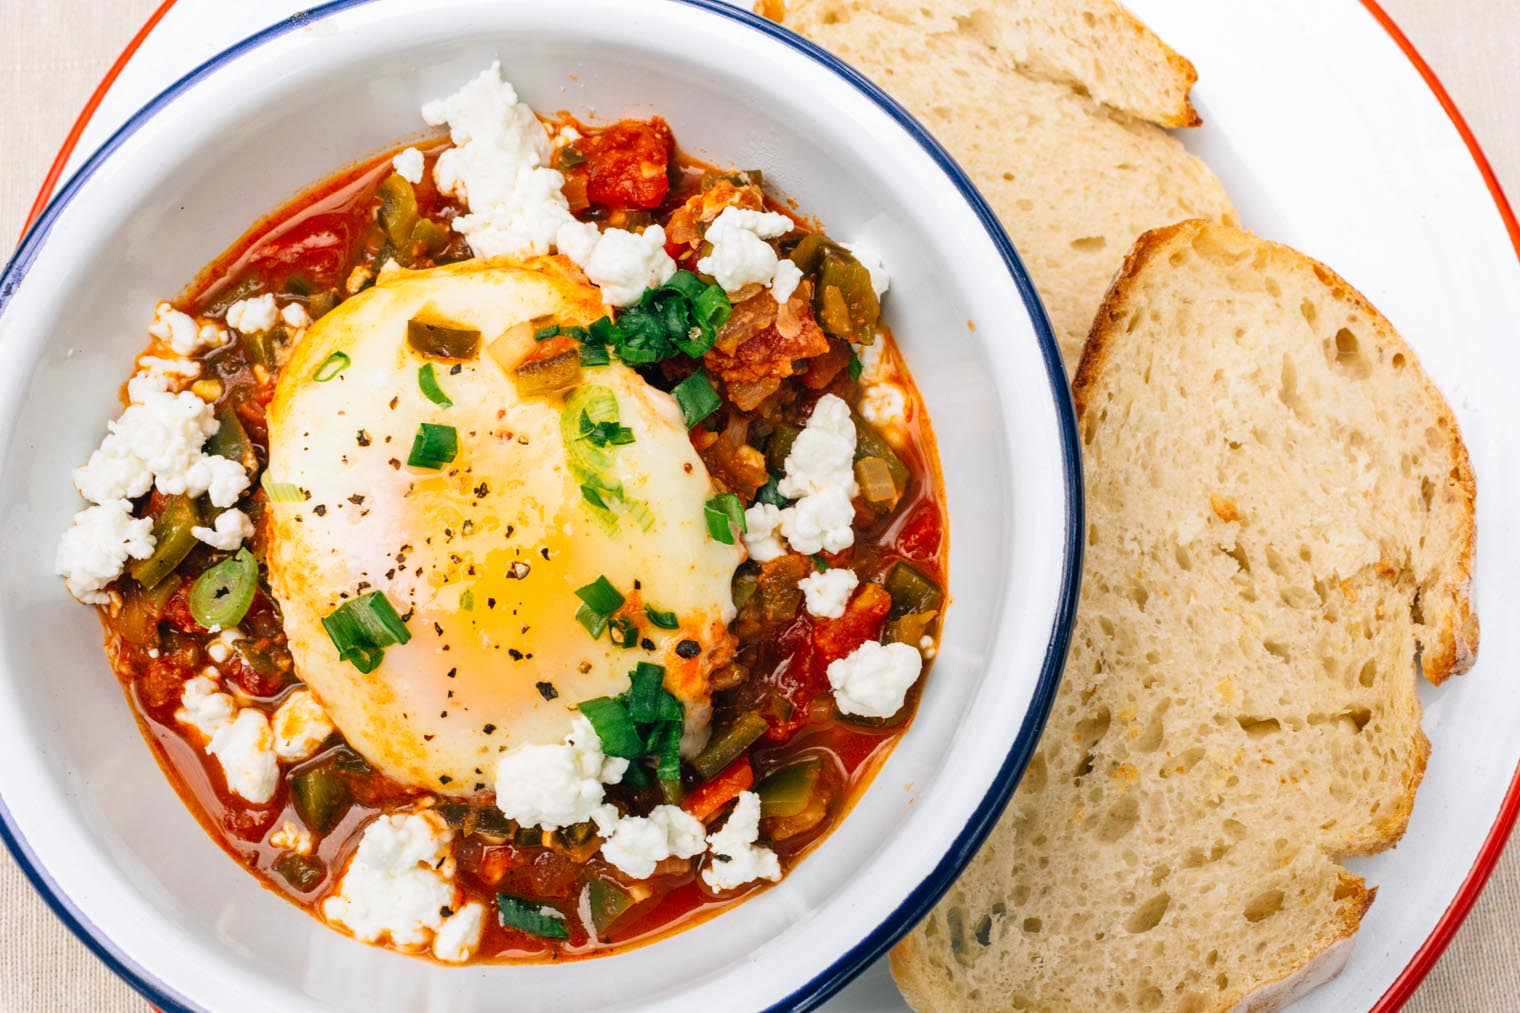 Shakshuka is an easy one pot camping meal for either breakfast or dinner.